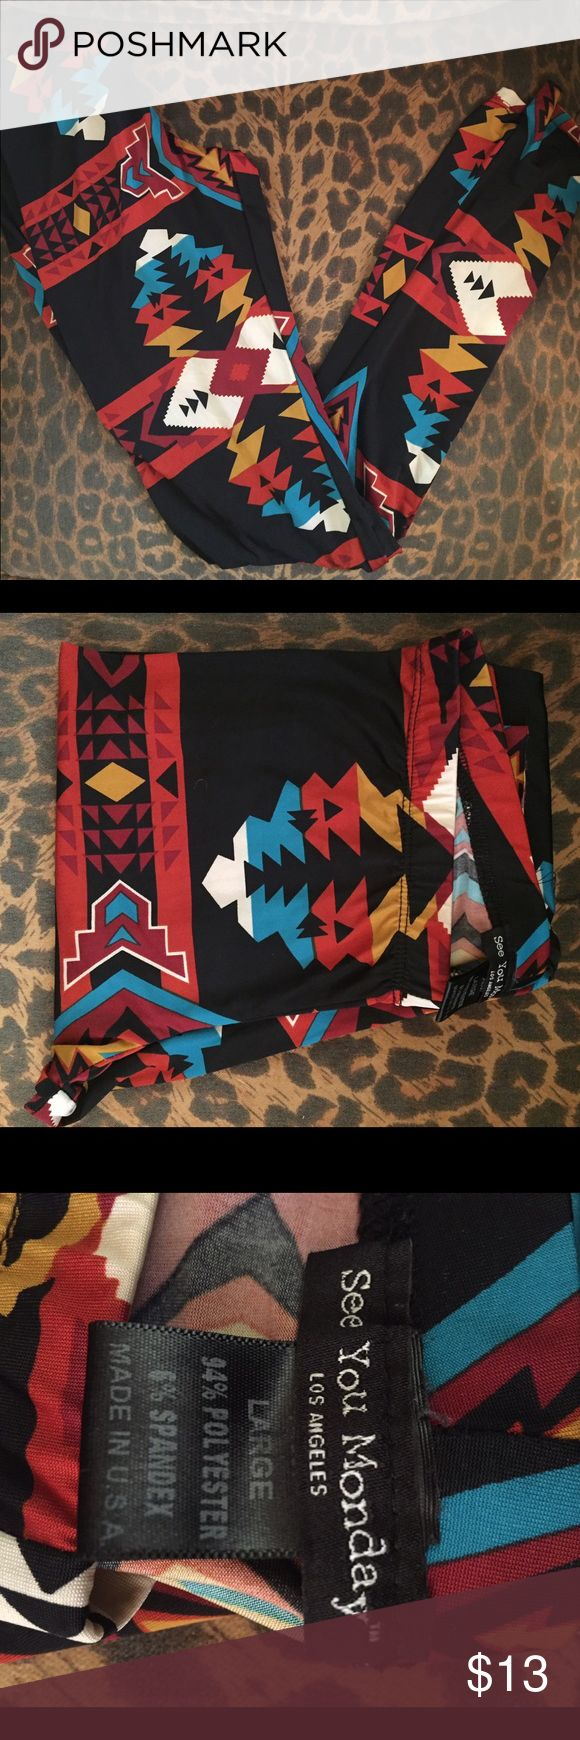 Aztec Tights These Aztec tights are ankle length! They have black, red, turquoise, orange and white in the designs! They will look adorable with any colored flowy top!! see you monday Pants Leggings